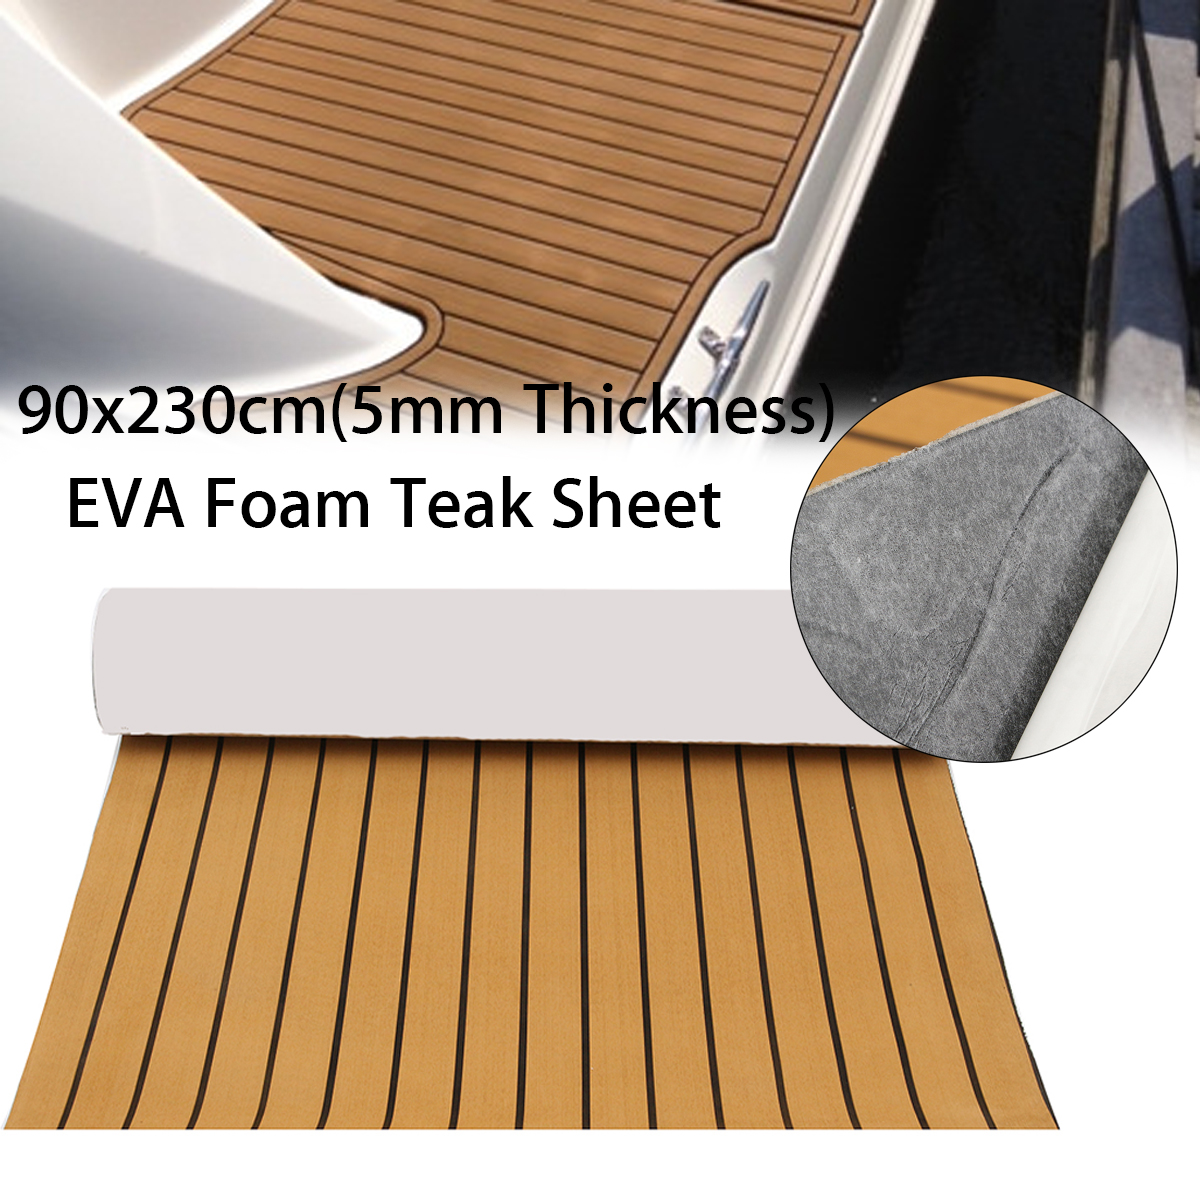 90x230cm Self-Adhesive EVA 5mm Foam Teak Sheet Boat Yacht Synthetic Decking Gold with teakdecking Black Lines